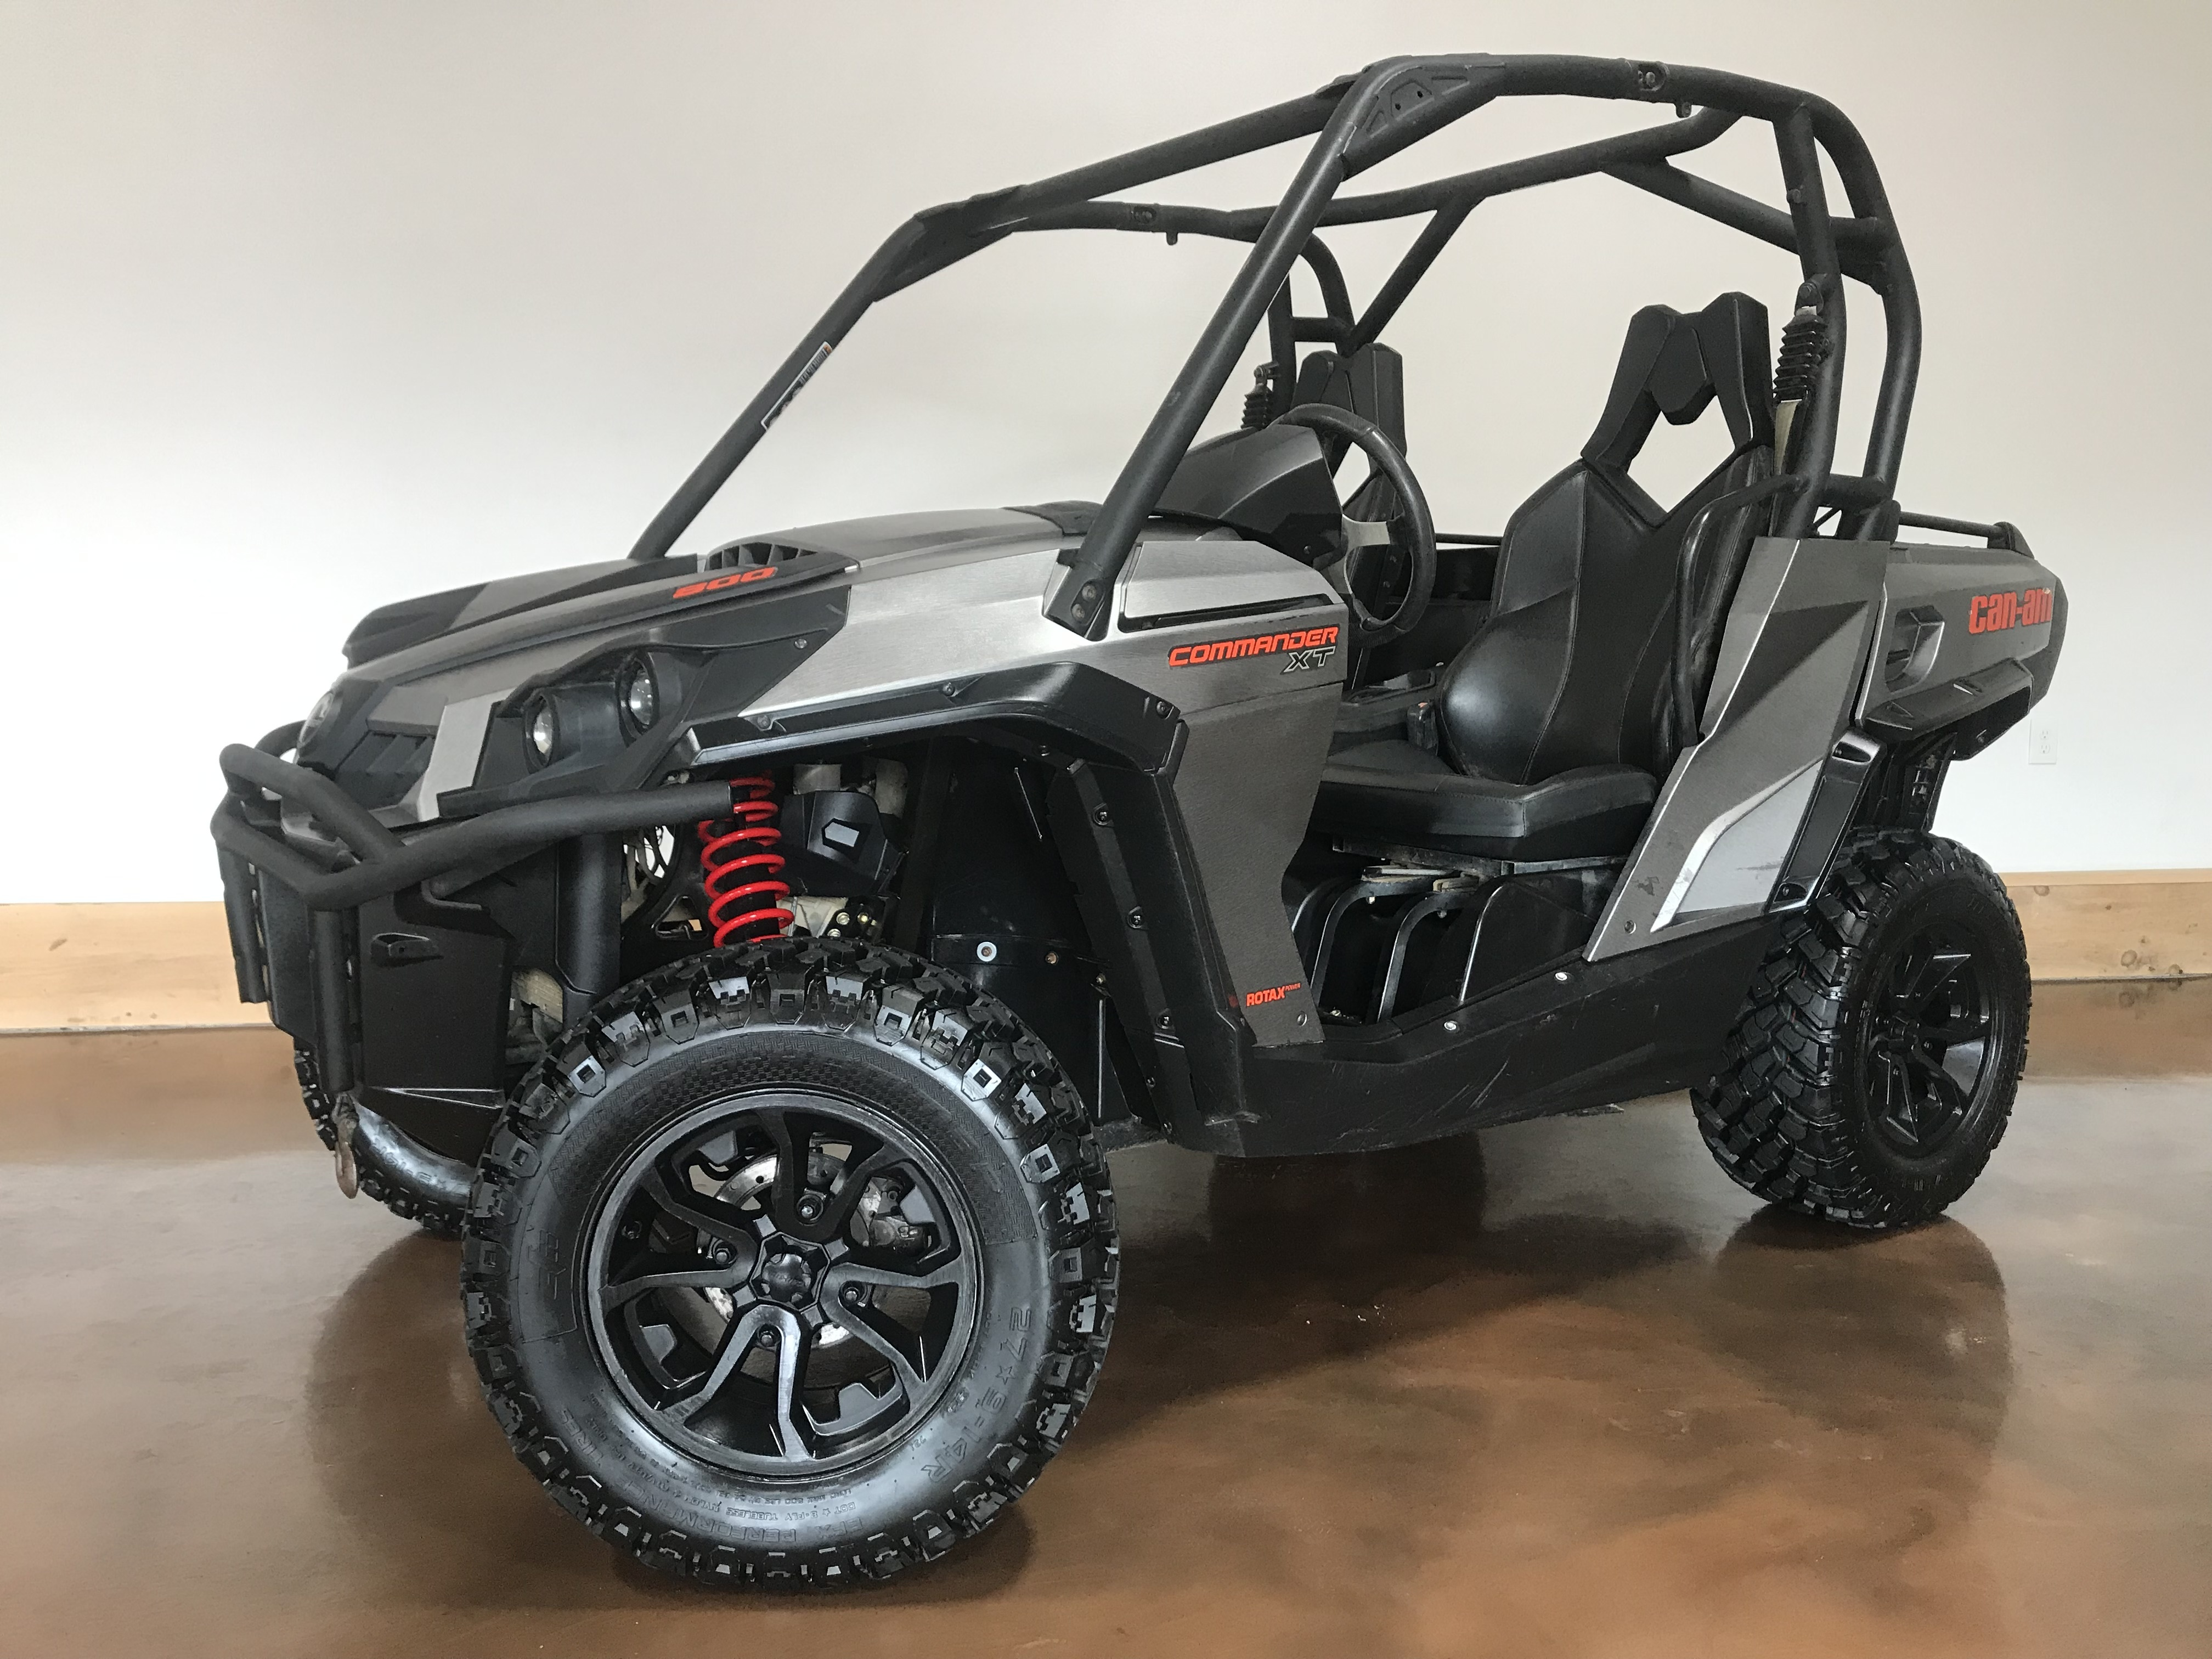 2016 Can-Am Commander 800R XT DPS 79799